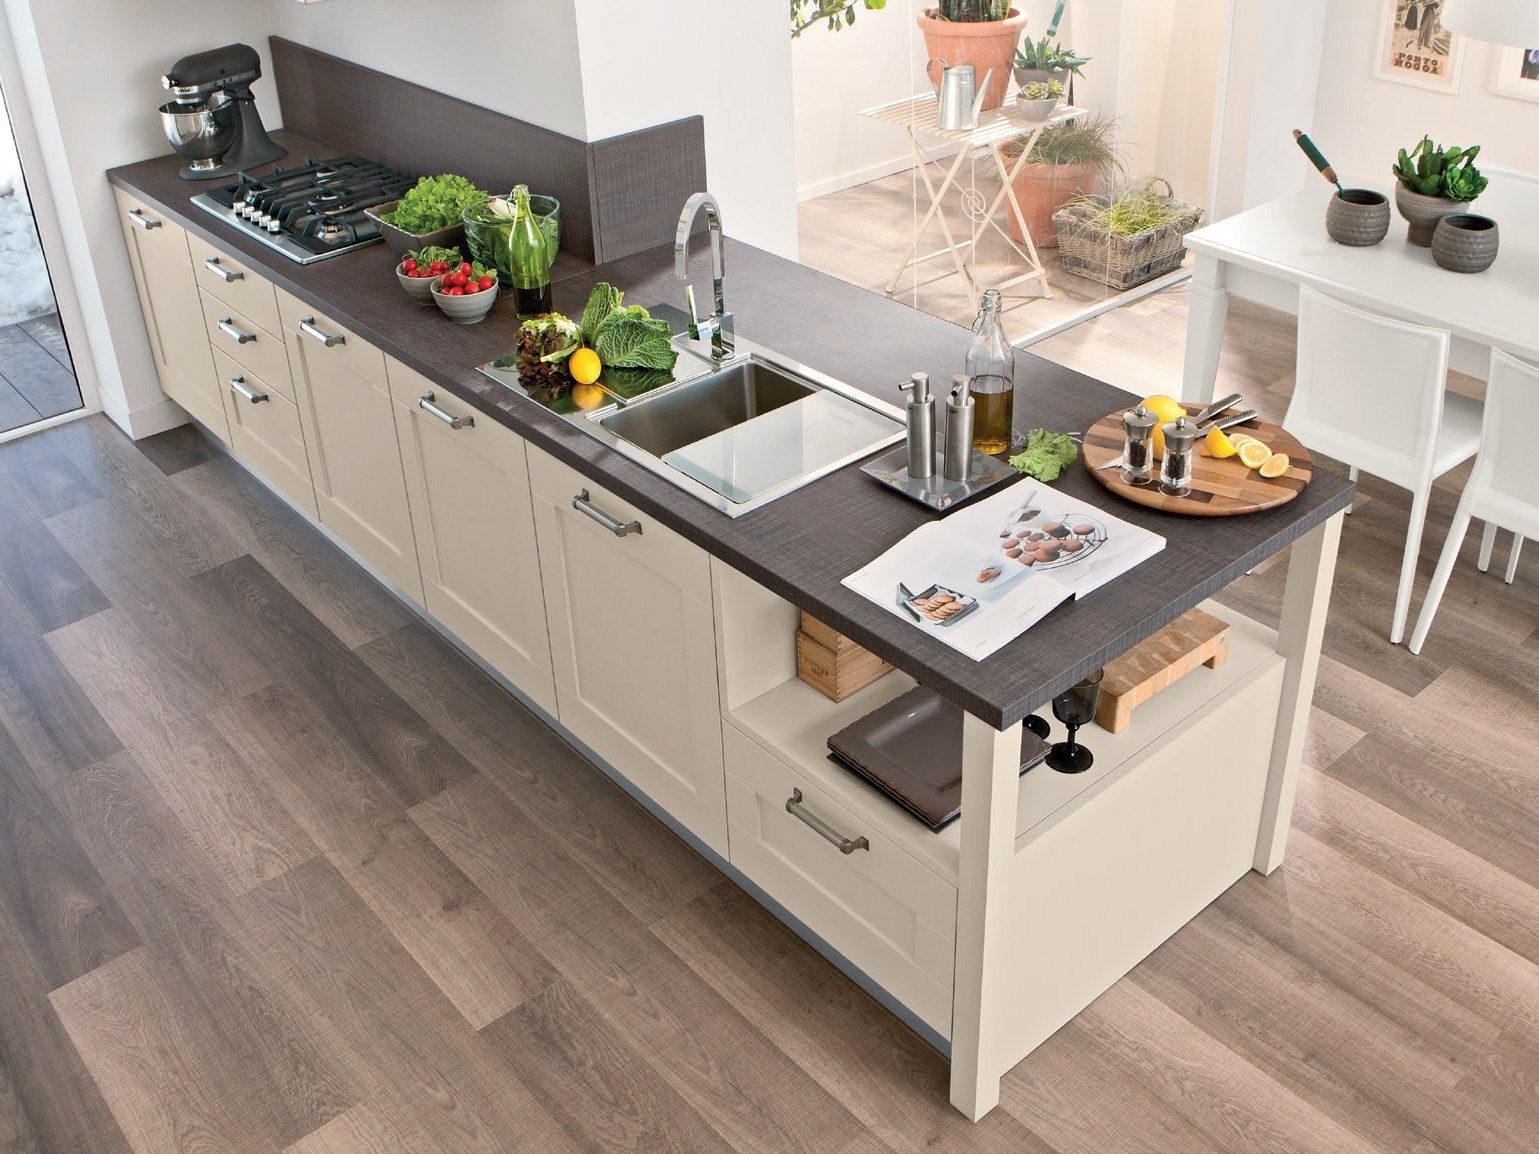 LACQUERED WOODEN KITCHEN GALLERY COLLECTION BY CUCINE LUBE ...